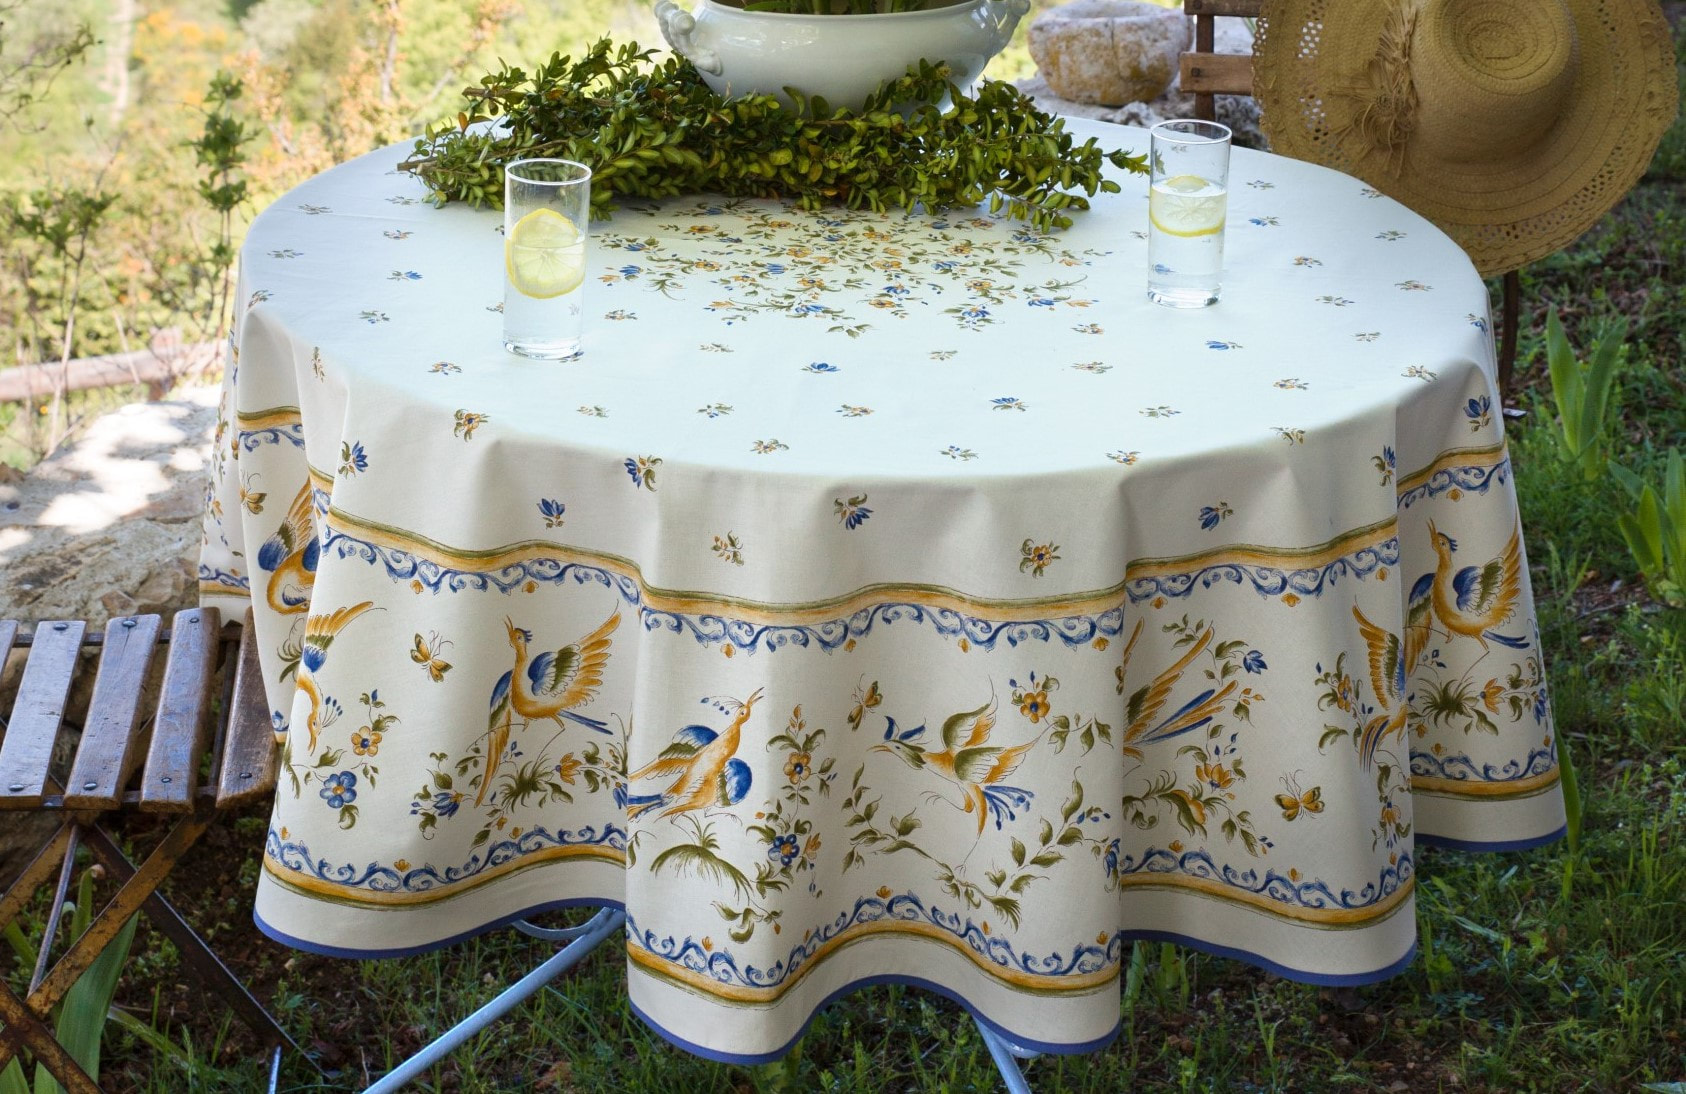 Moustier Blue Cotton Tablecloths French Country Table Cloth Decor Gifts Elegant Farm House Tablecloths